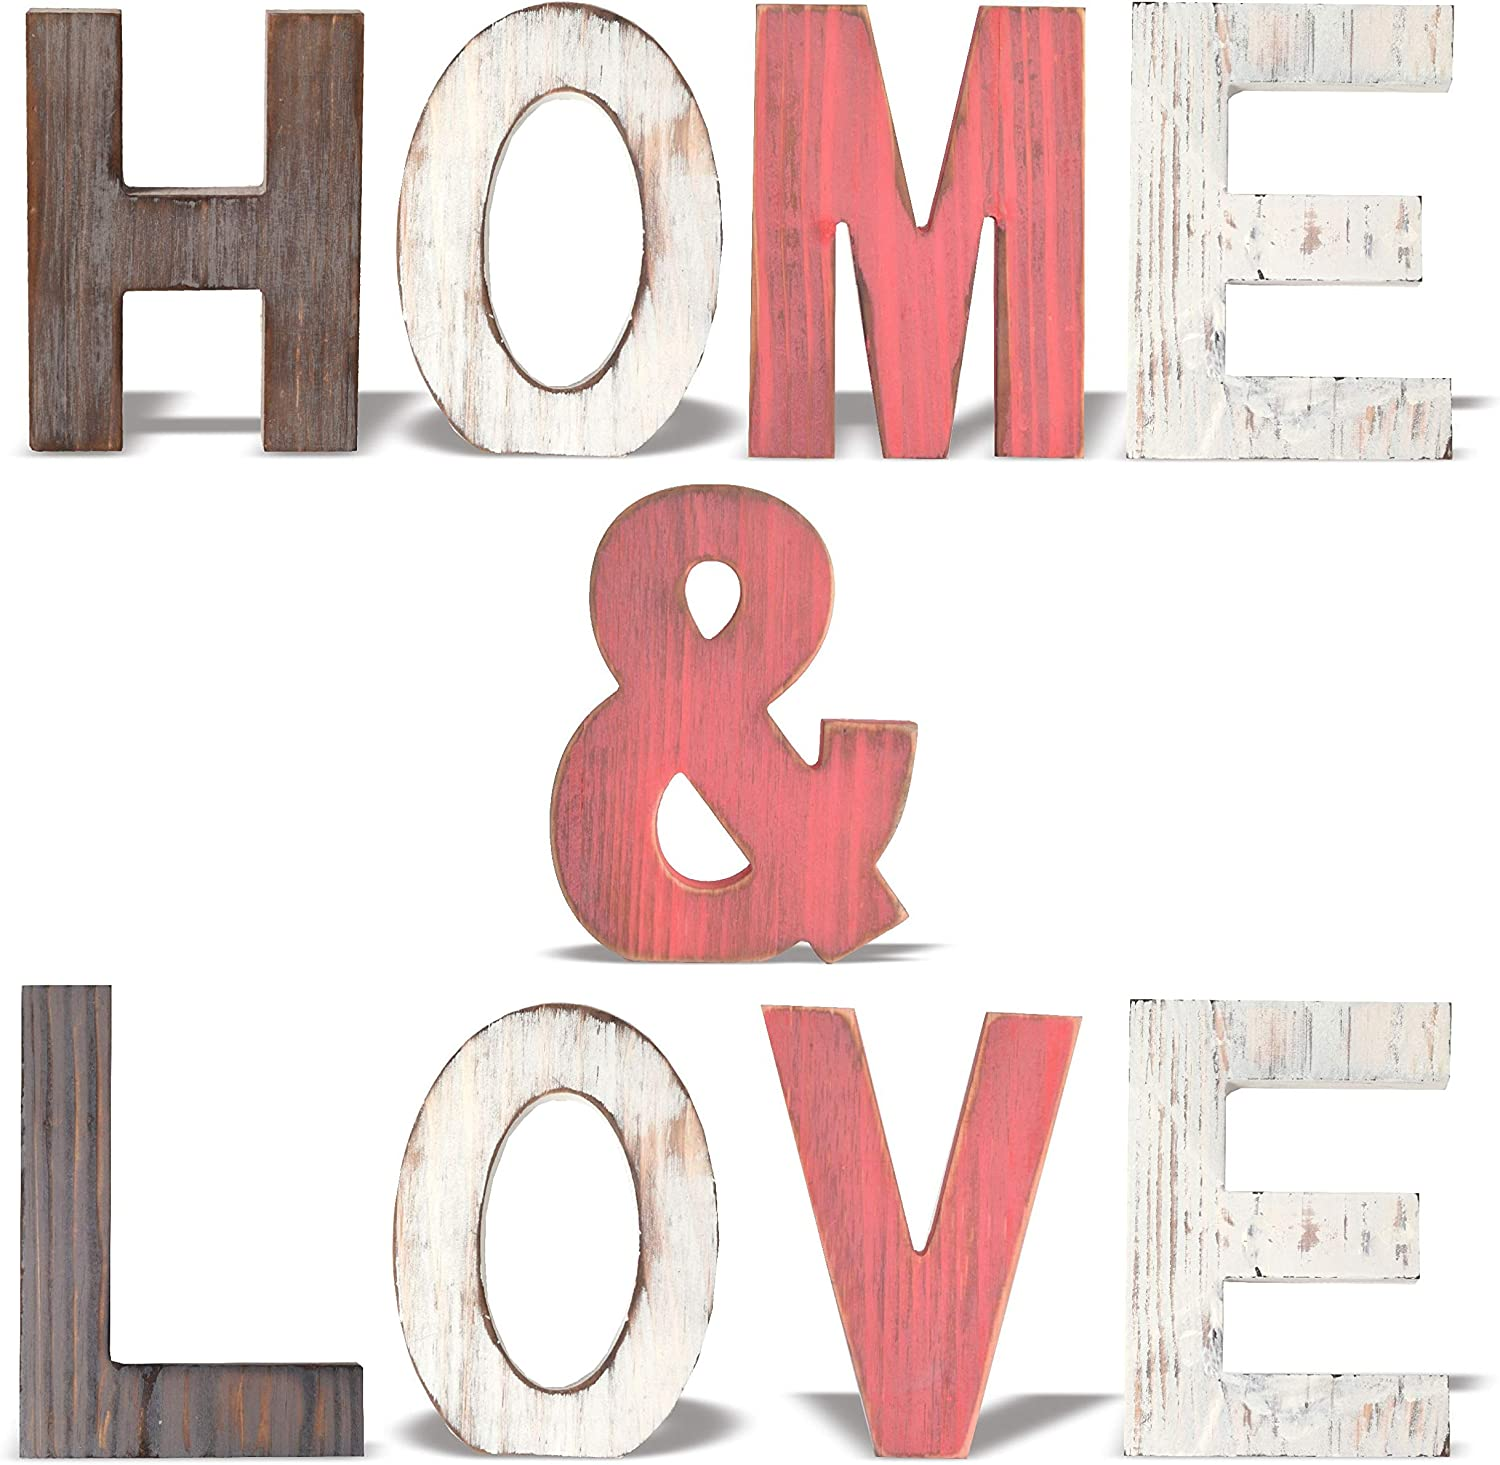 MEANT2TOBE Rustic Wood Home & Love Signs Home Décor |Freestanding Wooden Letters Cutouts for Home Décor|Multi-Color Wooden Signs |Decorative Word Signs|Multicolor Table Decor Centerpiece| (Red)